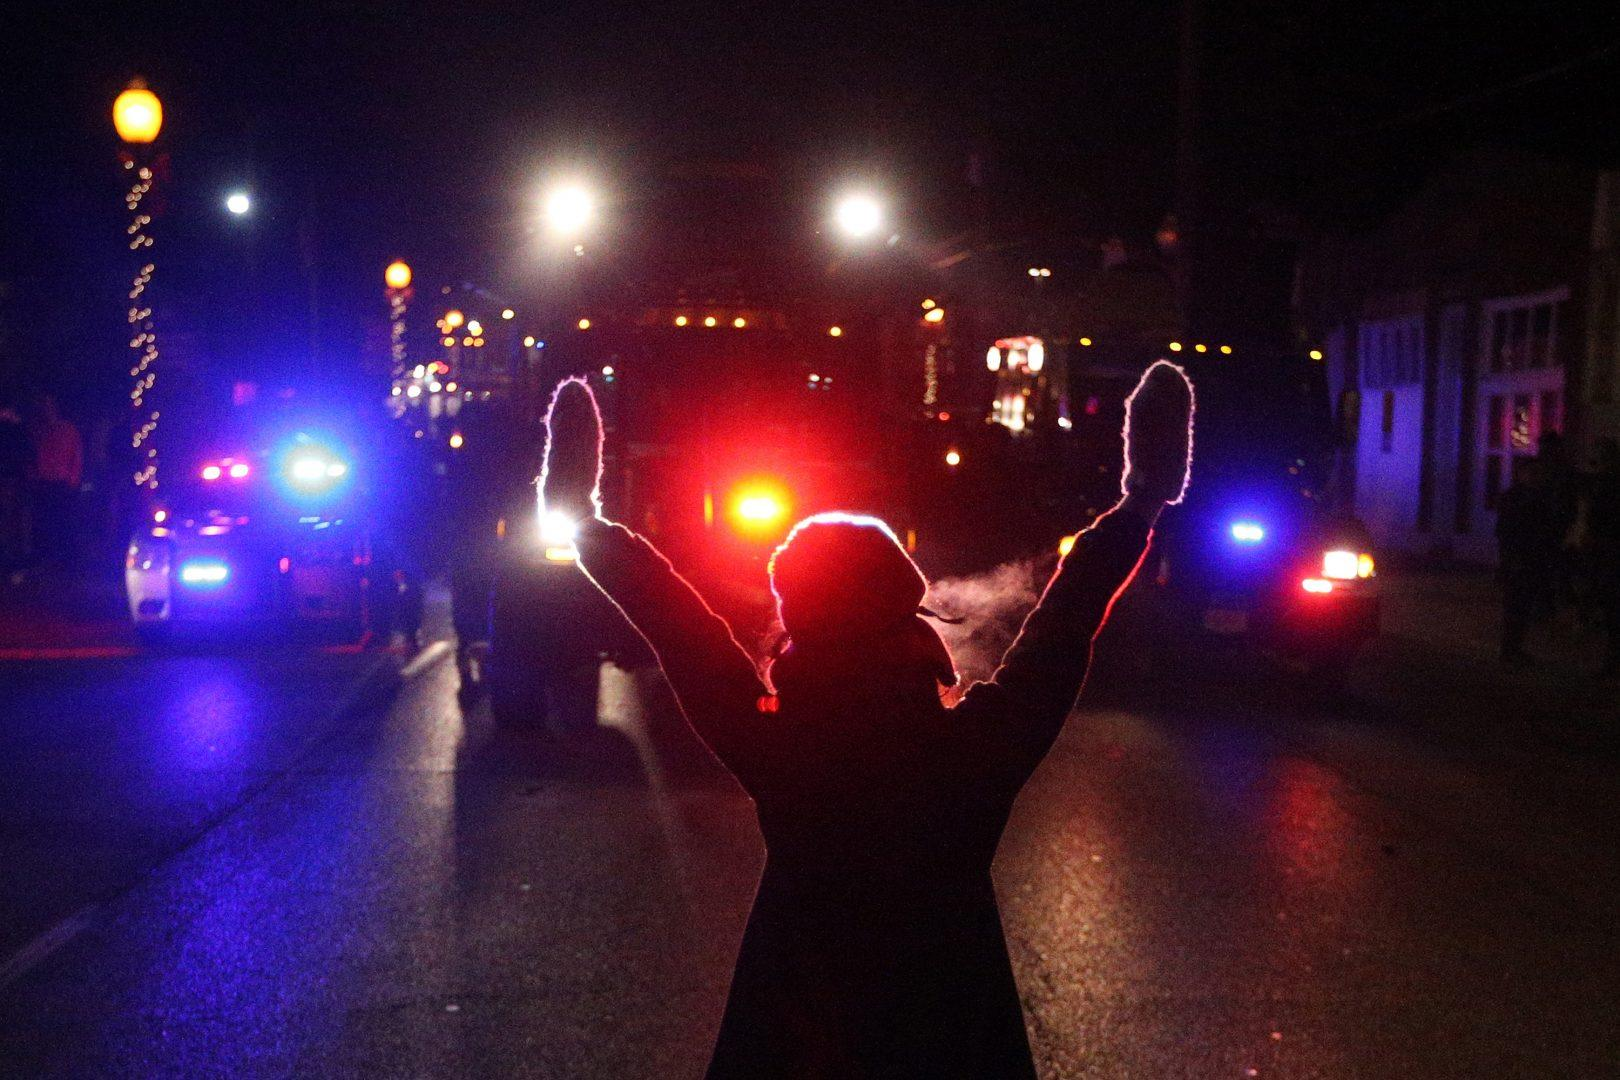 A protester raises her hands in the street as police use tear gas to try to take control of the scene near a Ferguson Police Department squad car after protesters lit it on fire on Tuesday, Nov. 25, 2014, in the wake of the grand jury decision not to indict officer Darren Wilson in the shooting death of Ferguson, Mo., teen Michael Brown. (Anthony Souffle / Chicago Tribune/TNS)